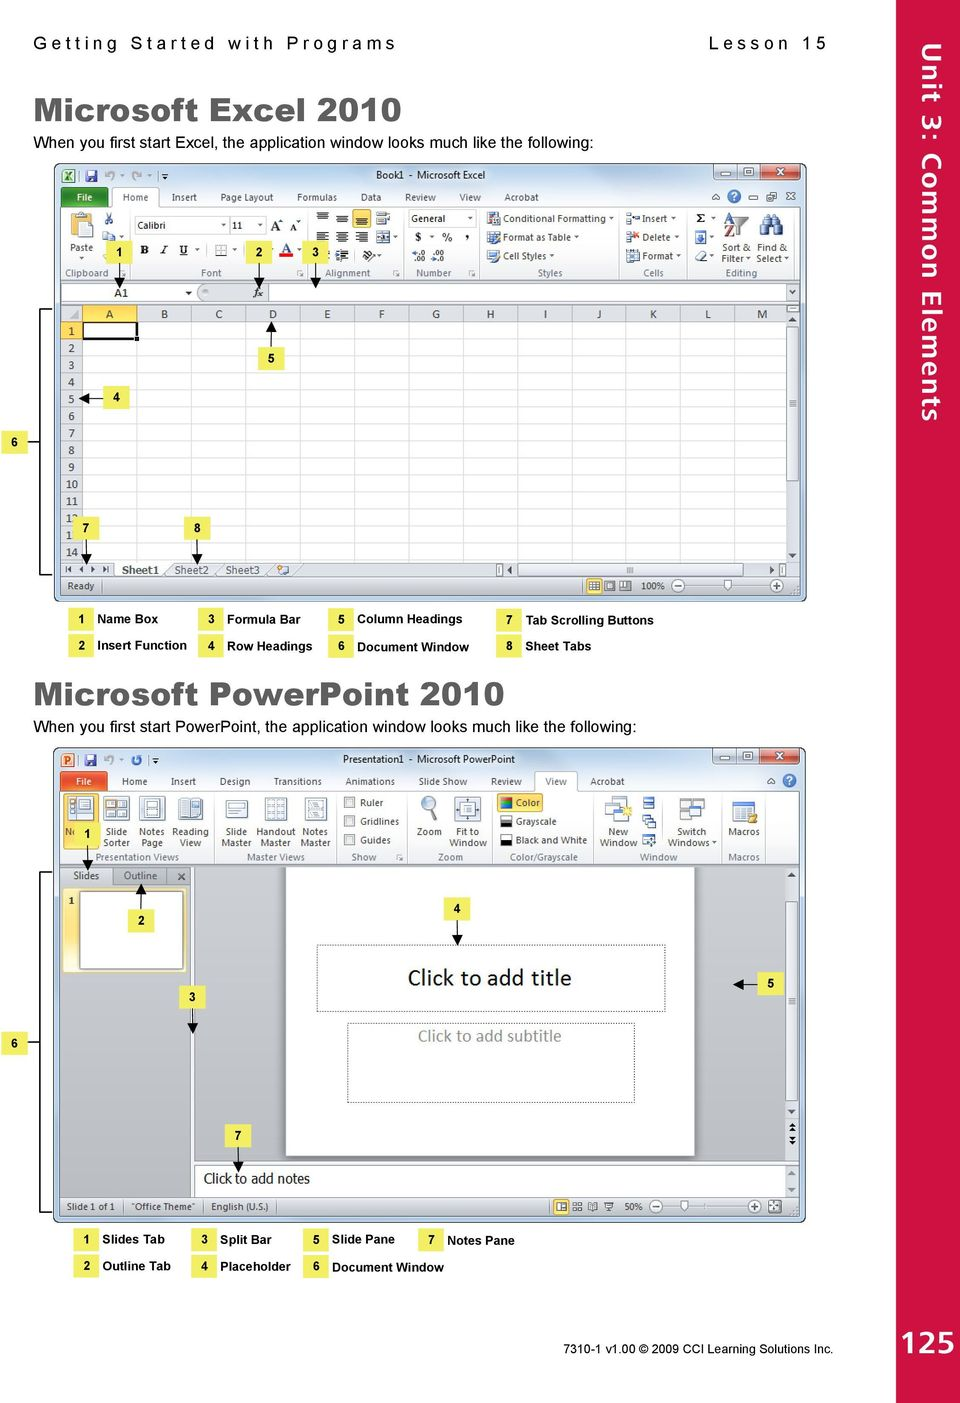 Window 8 Sheet Tabs Microsoft PowerPoint 2010 When you first start PowerPoint, the application window looks much like the following: 1 2 4 3 5 6 7